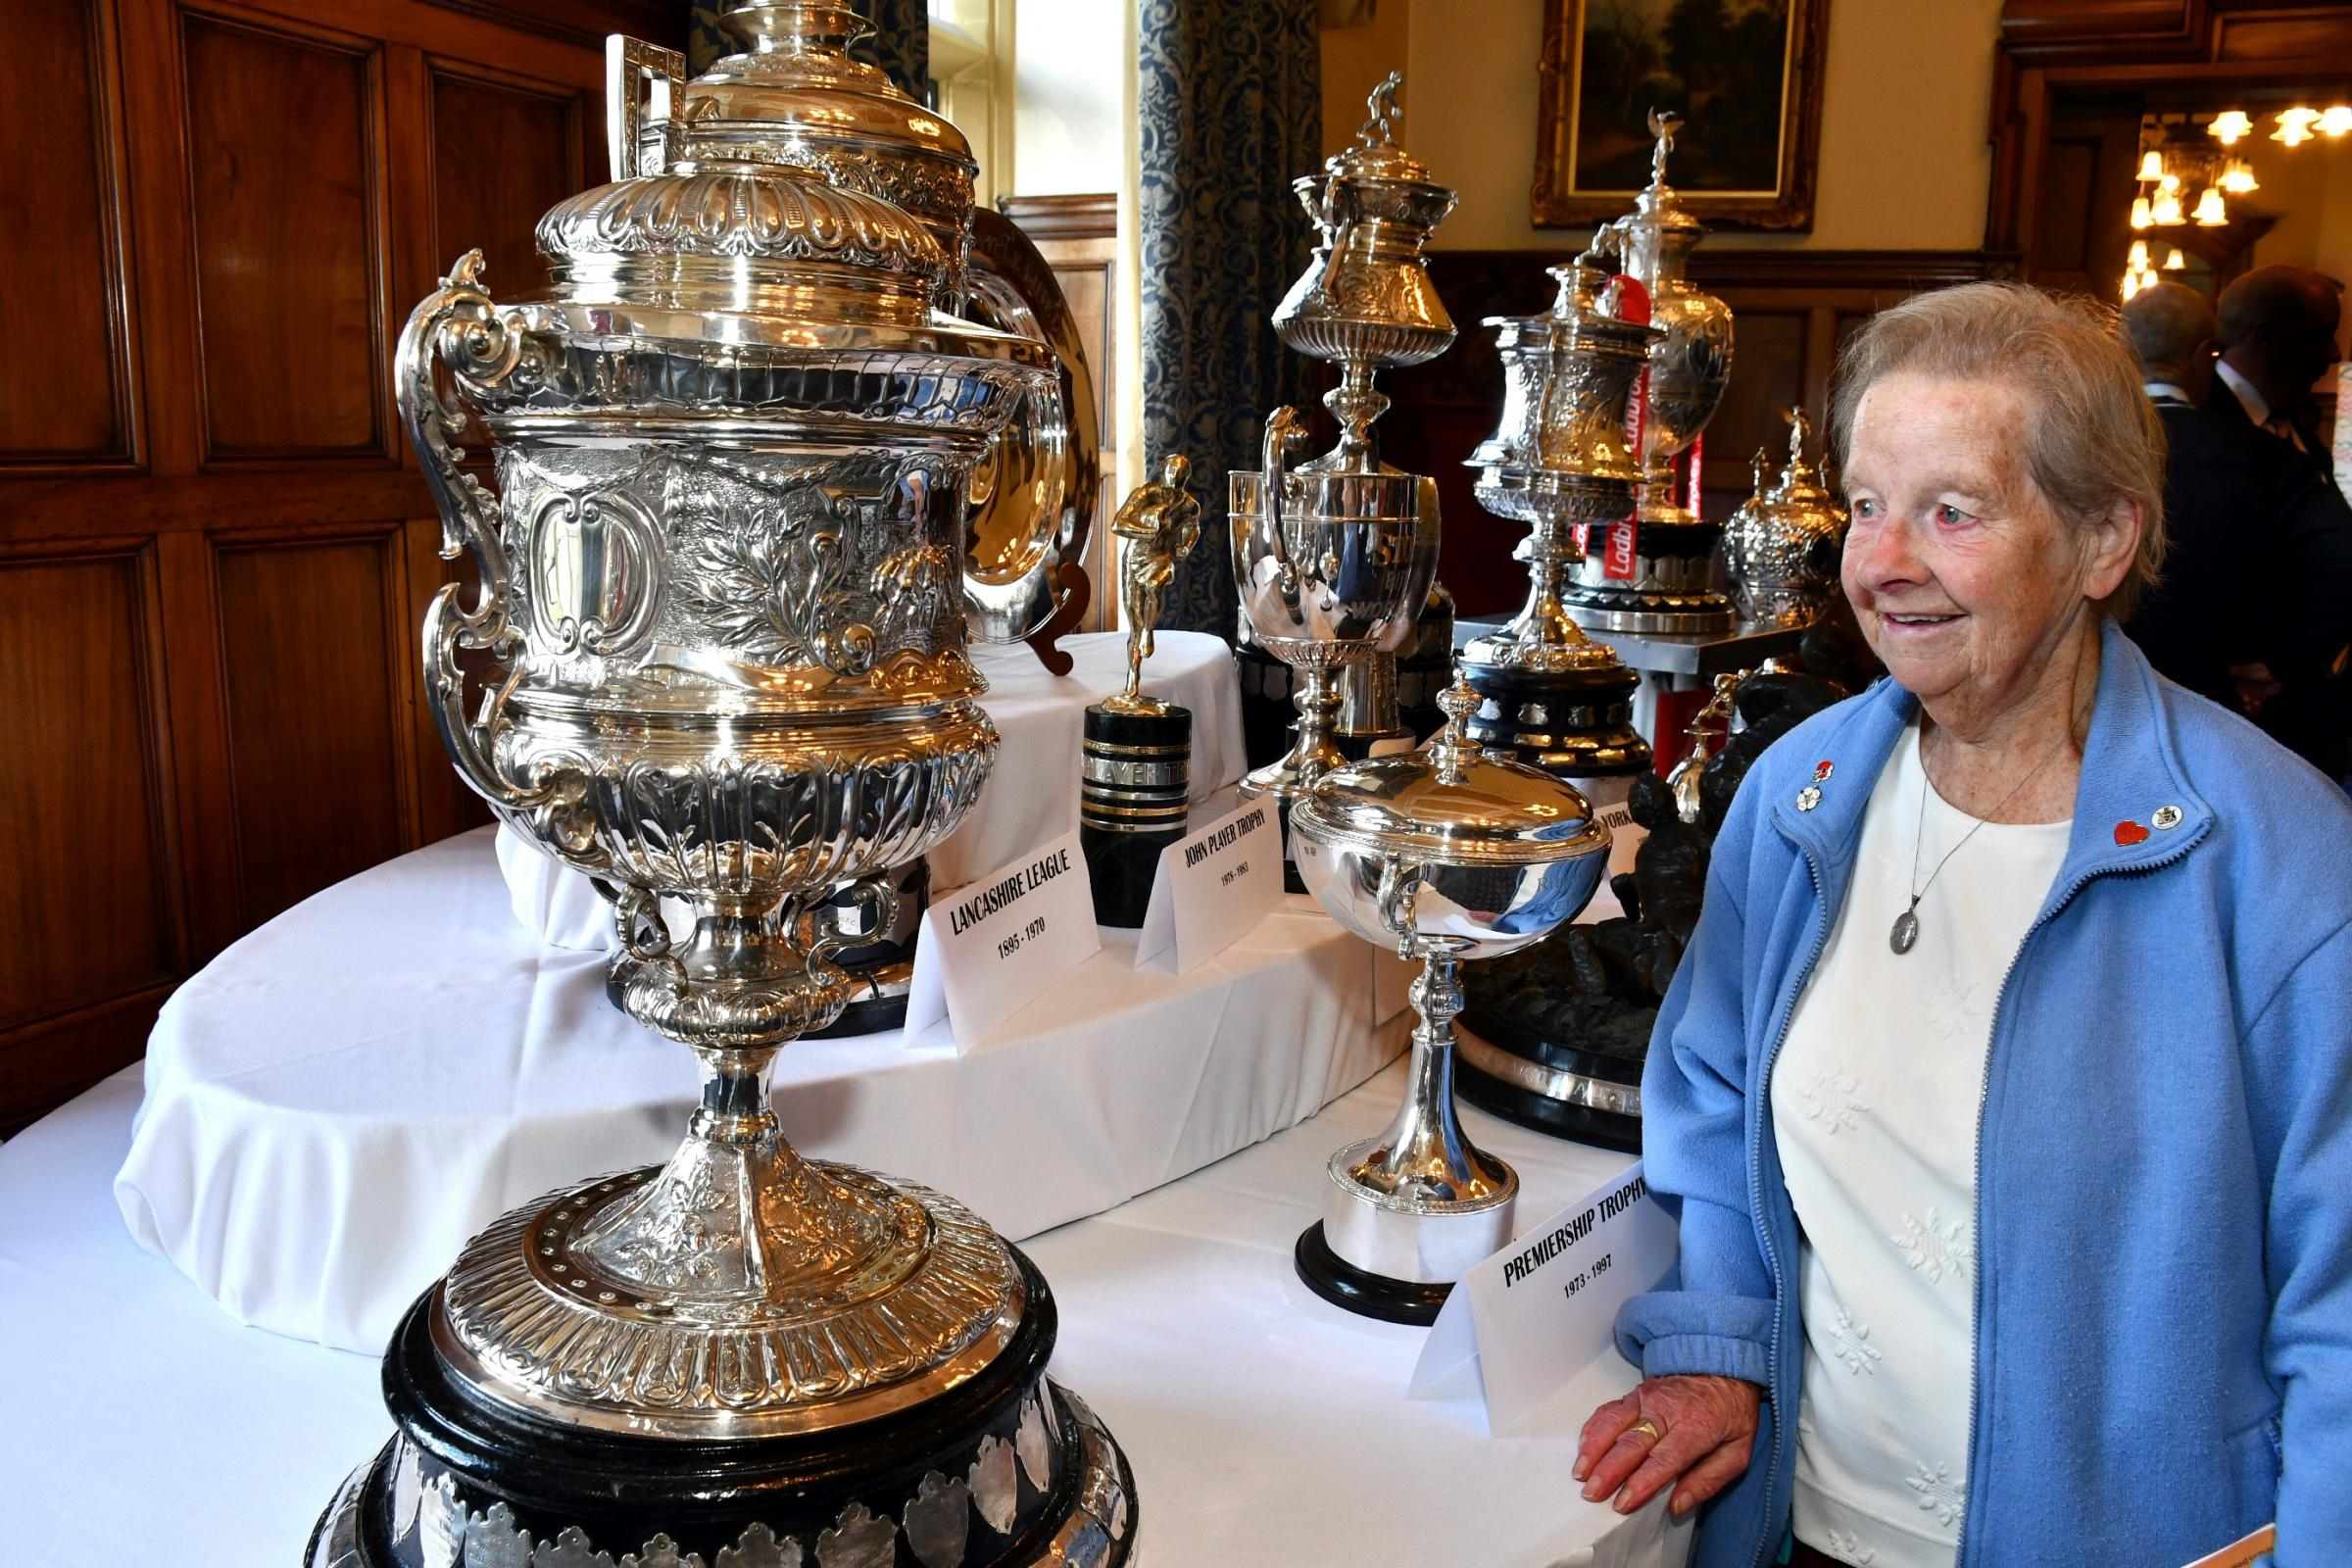 Bradford Northern and Bulls fan Betty Hall, aged 88, views the famous rugby league trophies on show at Bradford City Hall